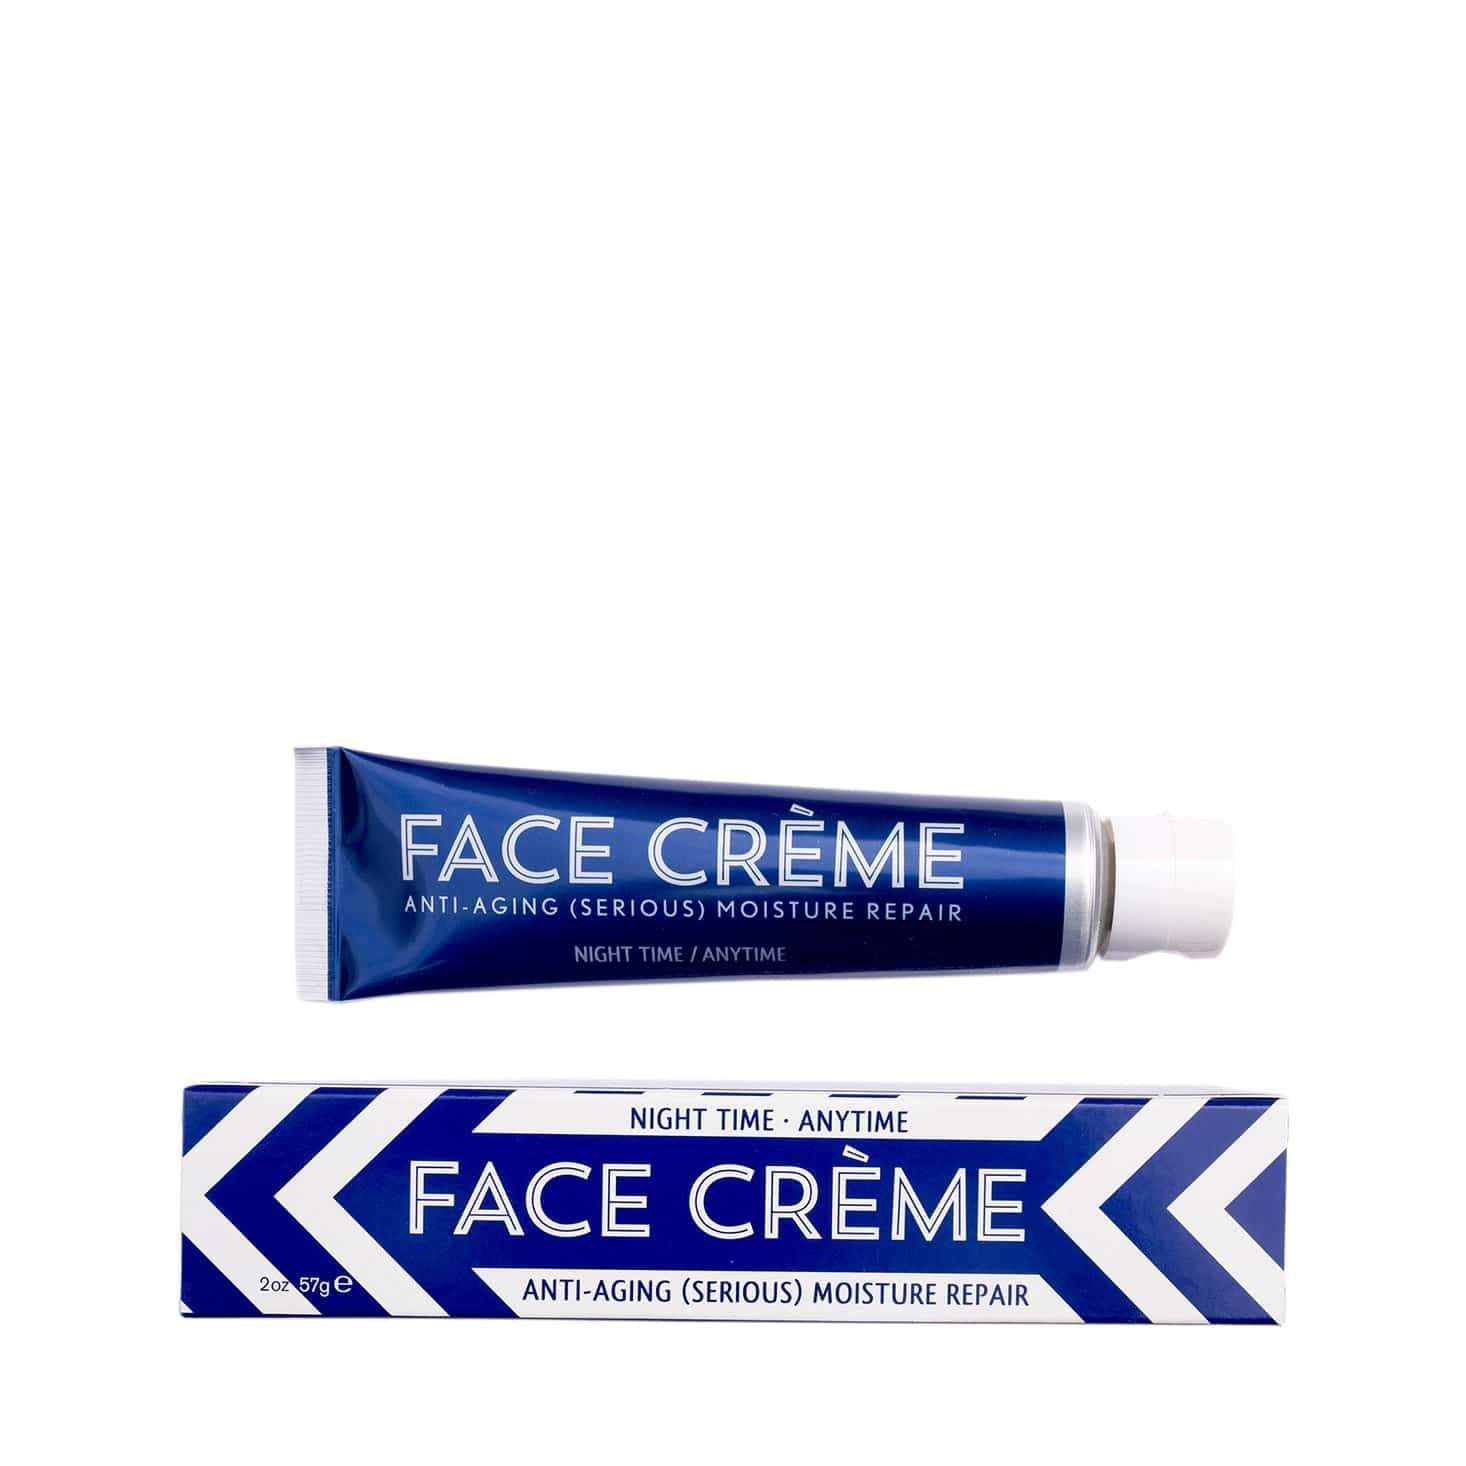 Jao Night Time Face Creme